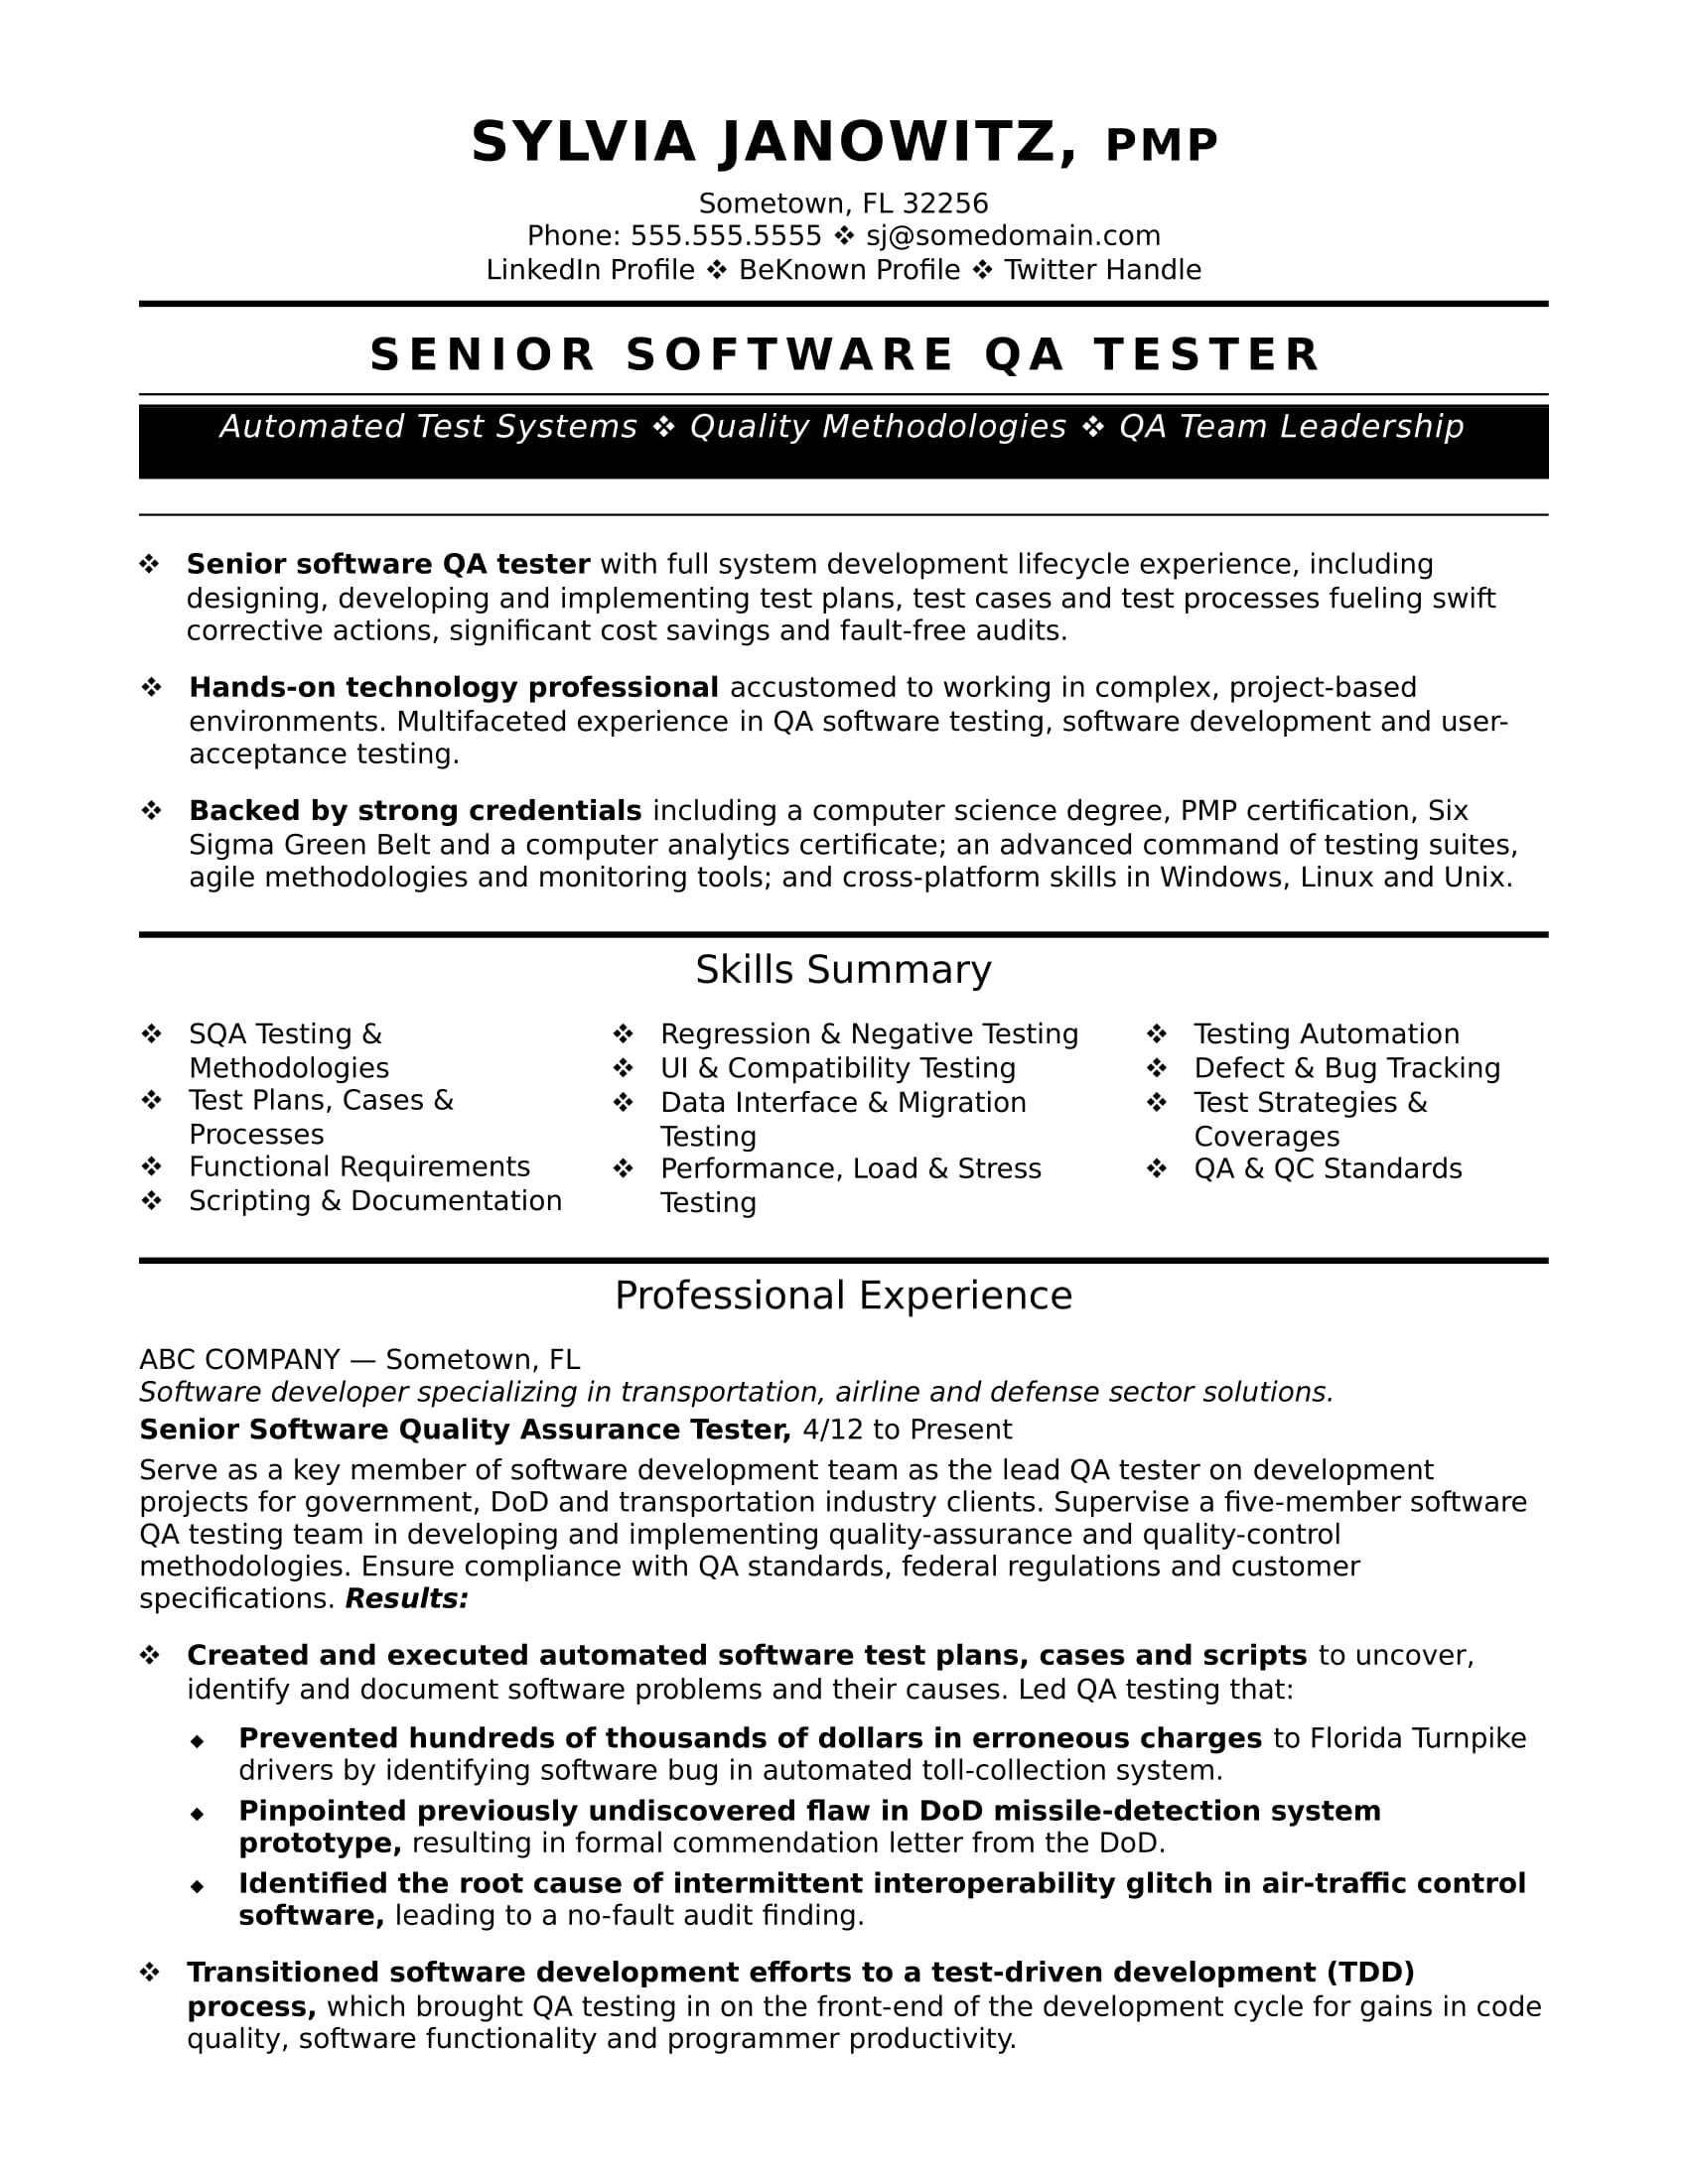 experienced qa software tester resume sample monster testing samples for years experience Resume Software Testing Resume Samples For 5 Years Experience